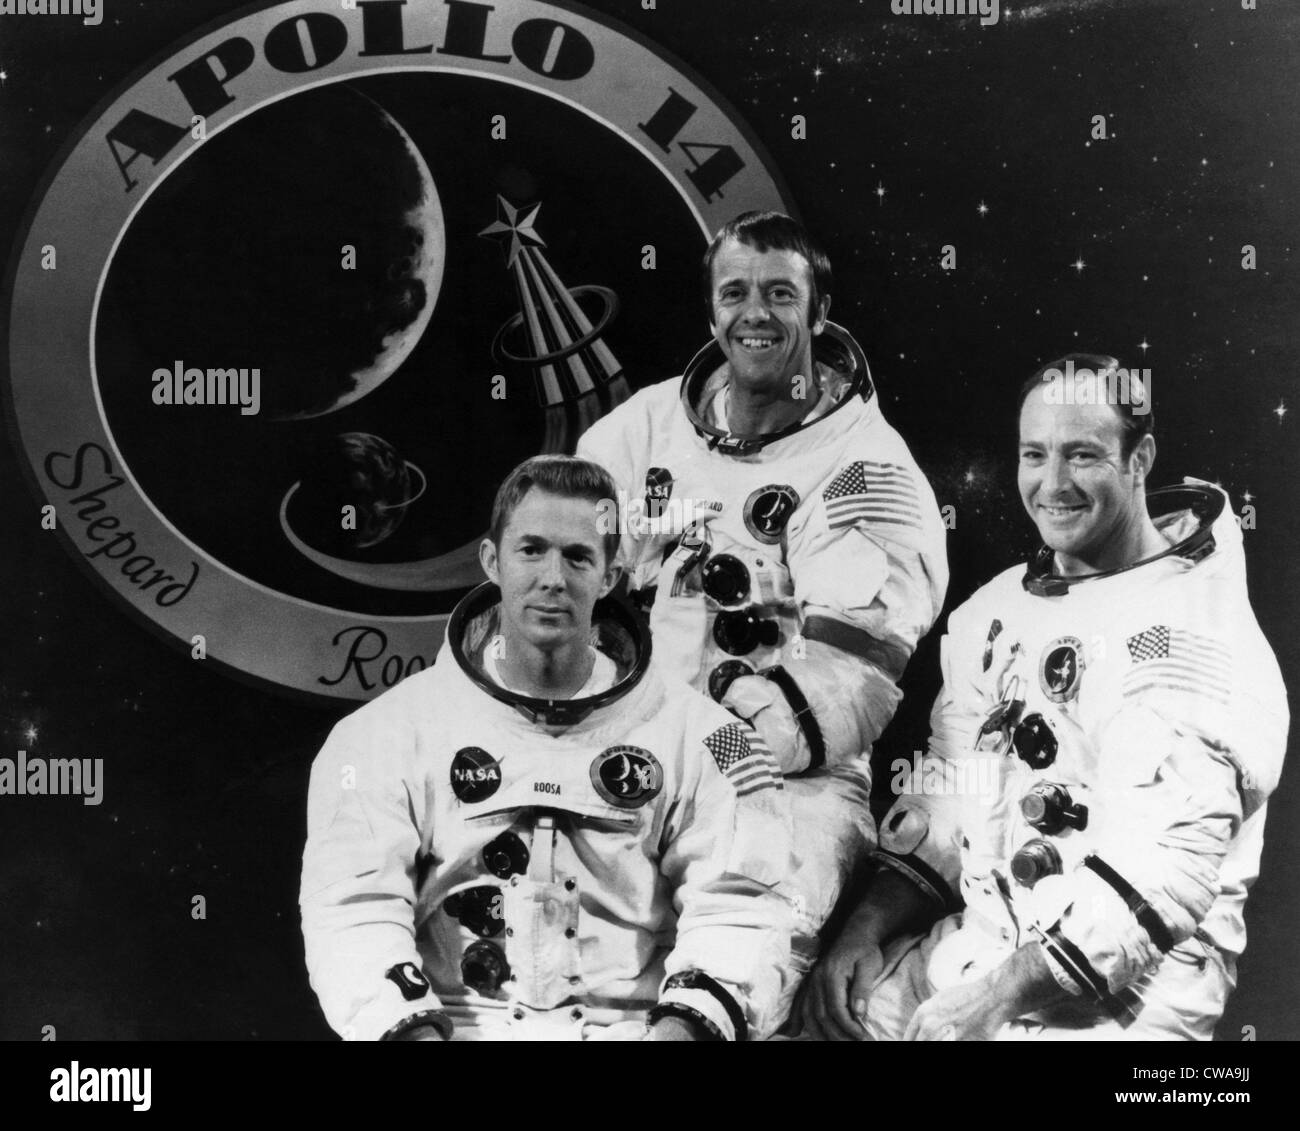 L'équipage d'Apollo 14, la L-R : Stuart Roosa, Alan Shepard, Edgar Mitchell, 1971.. Avec la permission Photo Stock